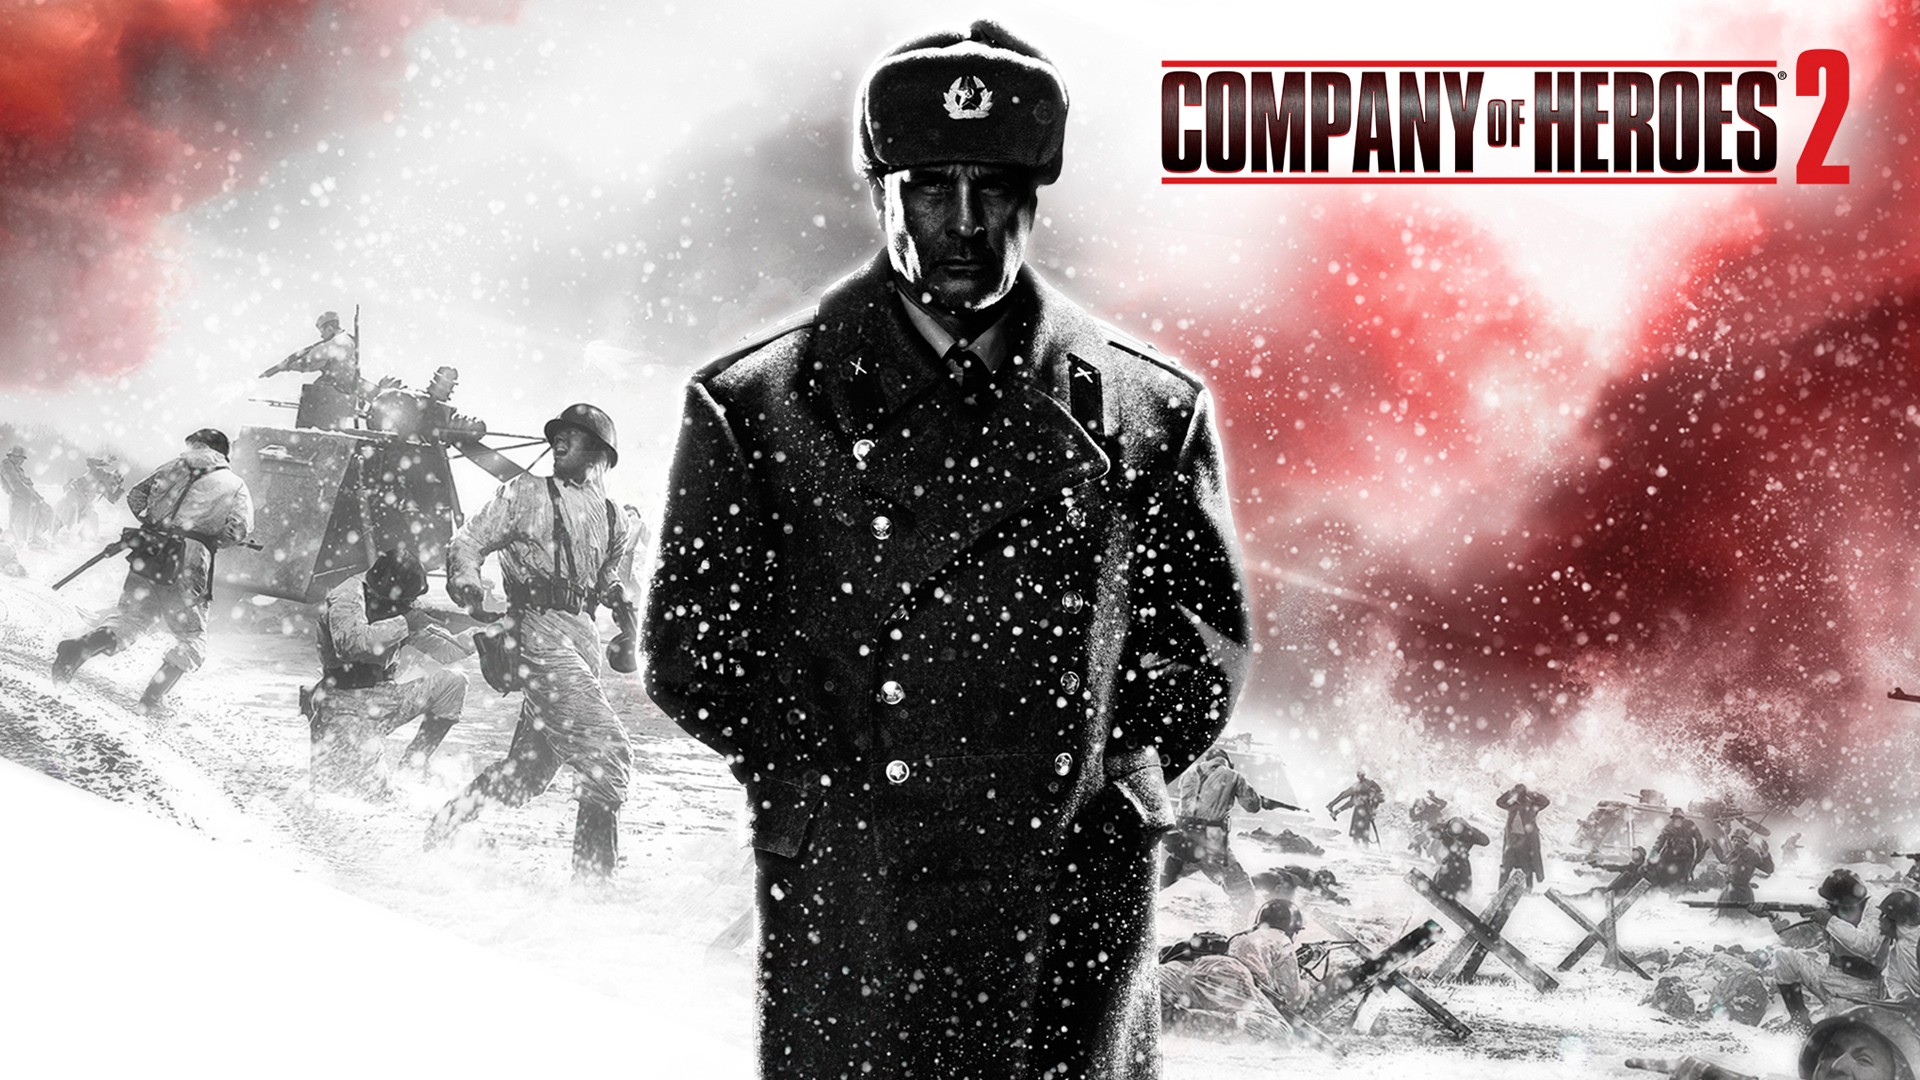 Titan Fall 2 Hd Wallpaper 2013 Company Of Heroes 2 Game Wallpapers Hd Wallpapers